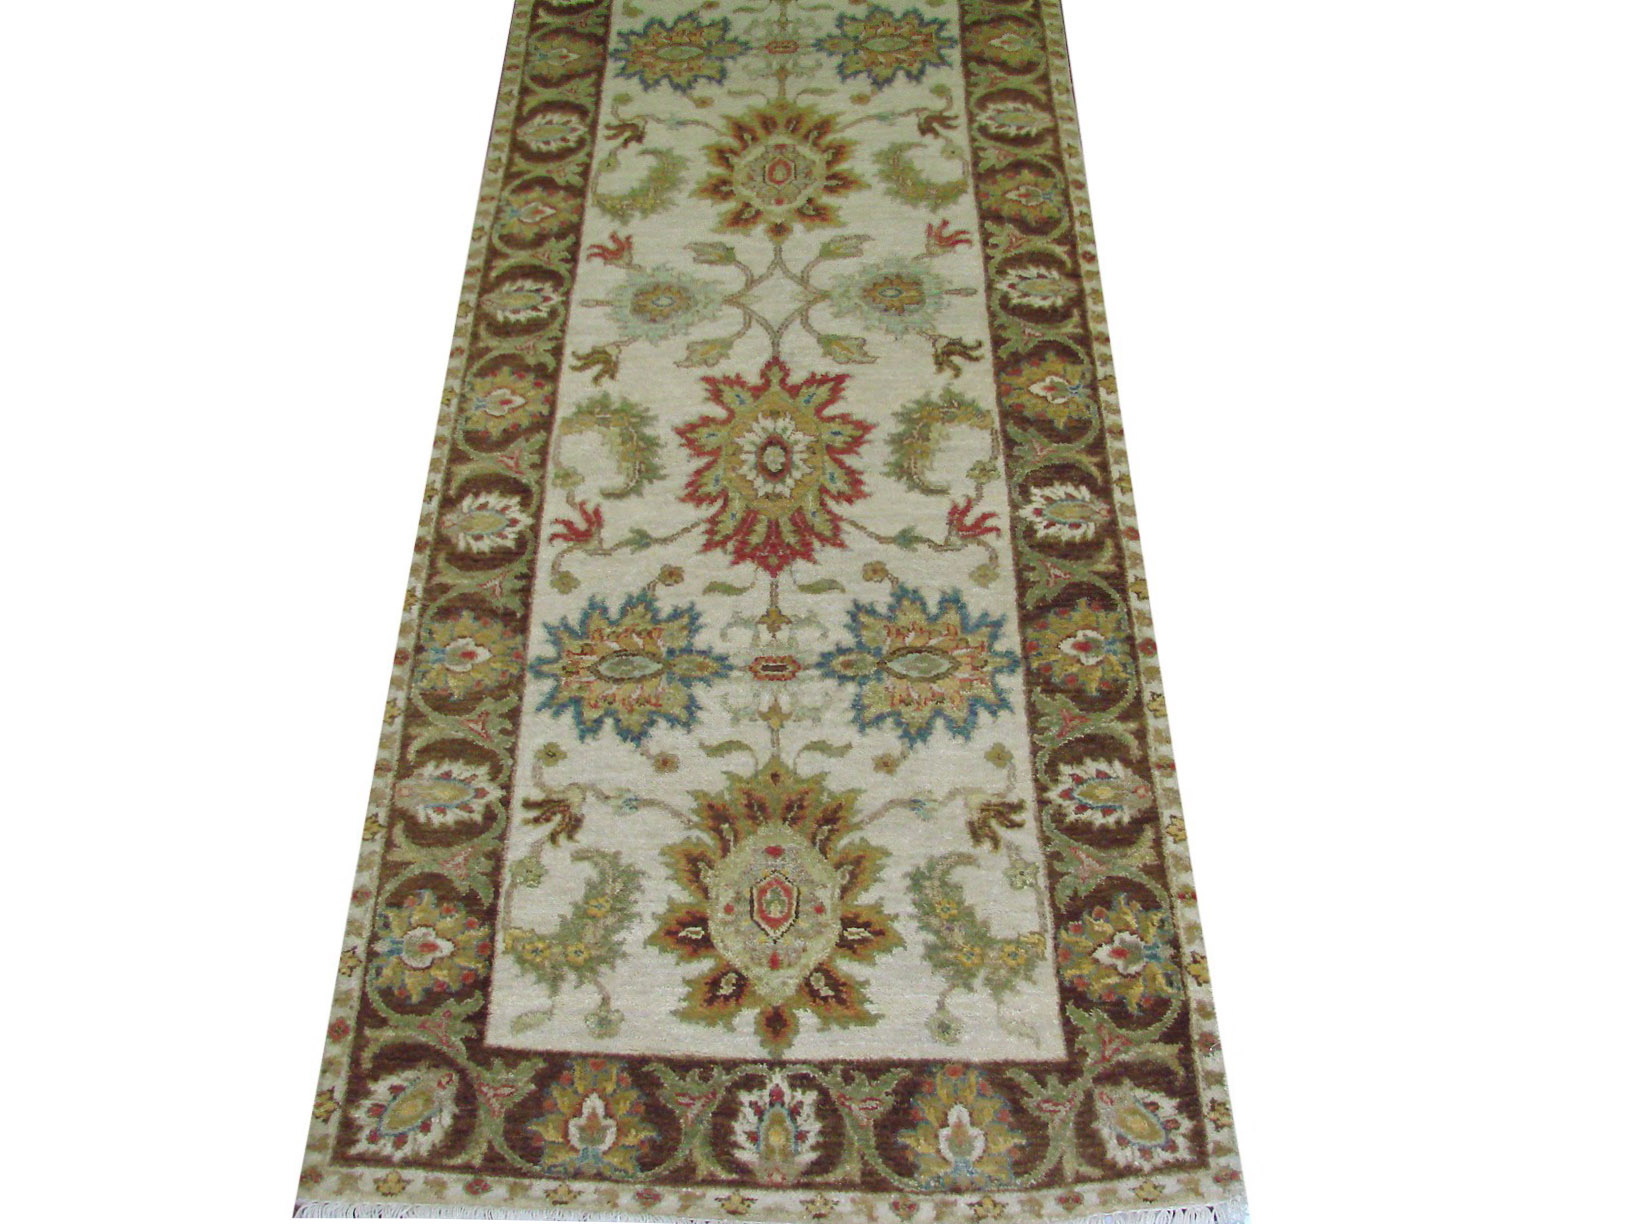 10 Runner Traditional Hand Knotted Wool Area Rug - MR021994